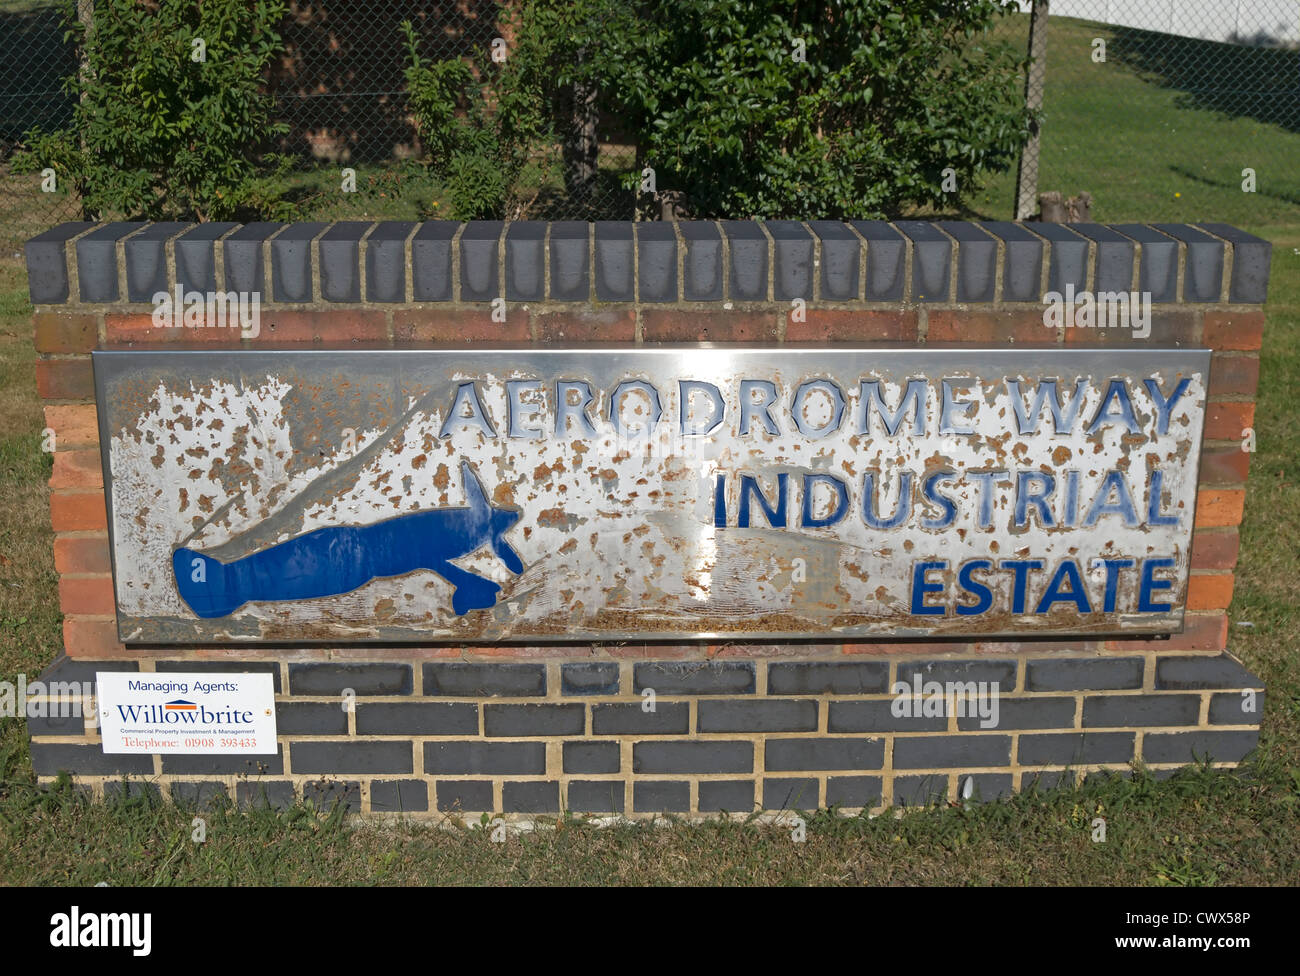 sign for aerodrome way industrial estate, cranford, middlesex, england, which occupies the former site of  heston - Stock Image